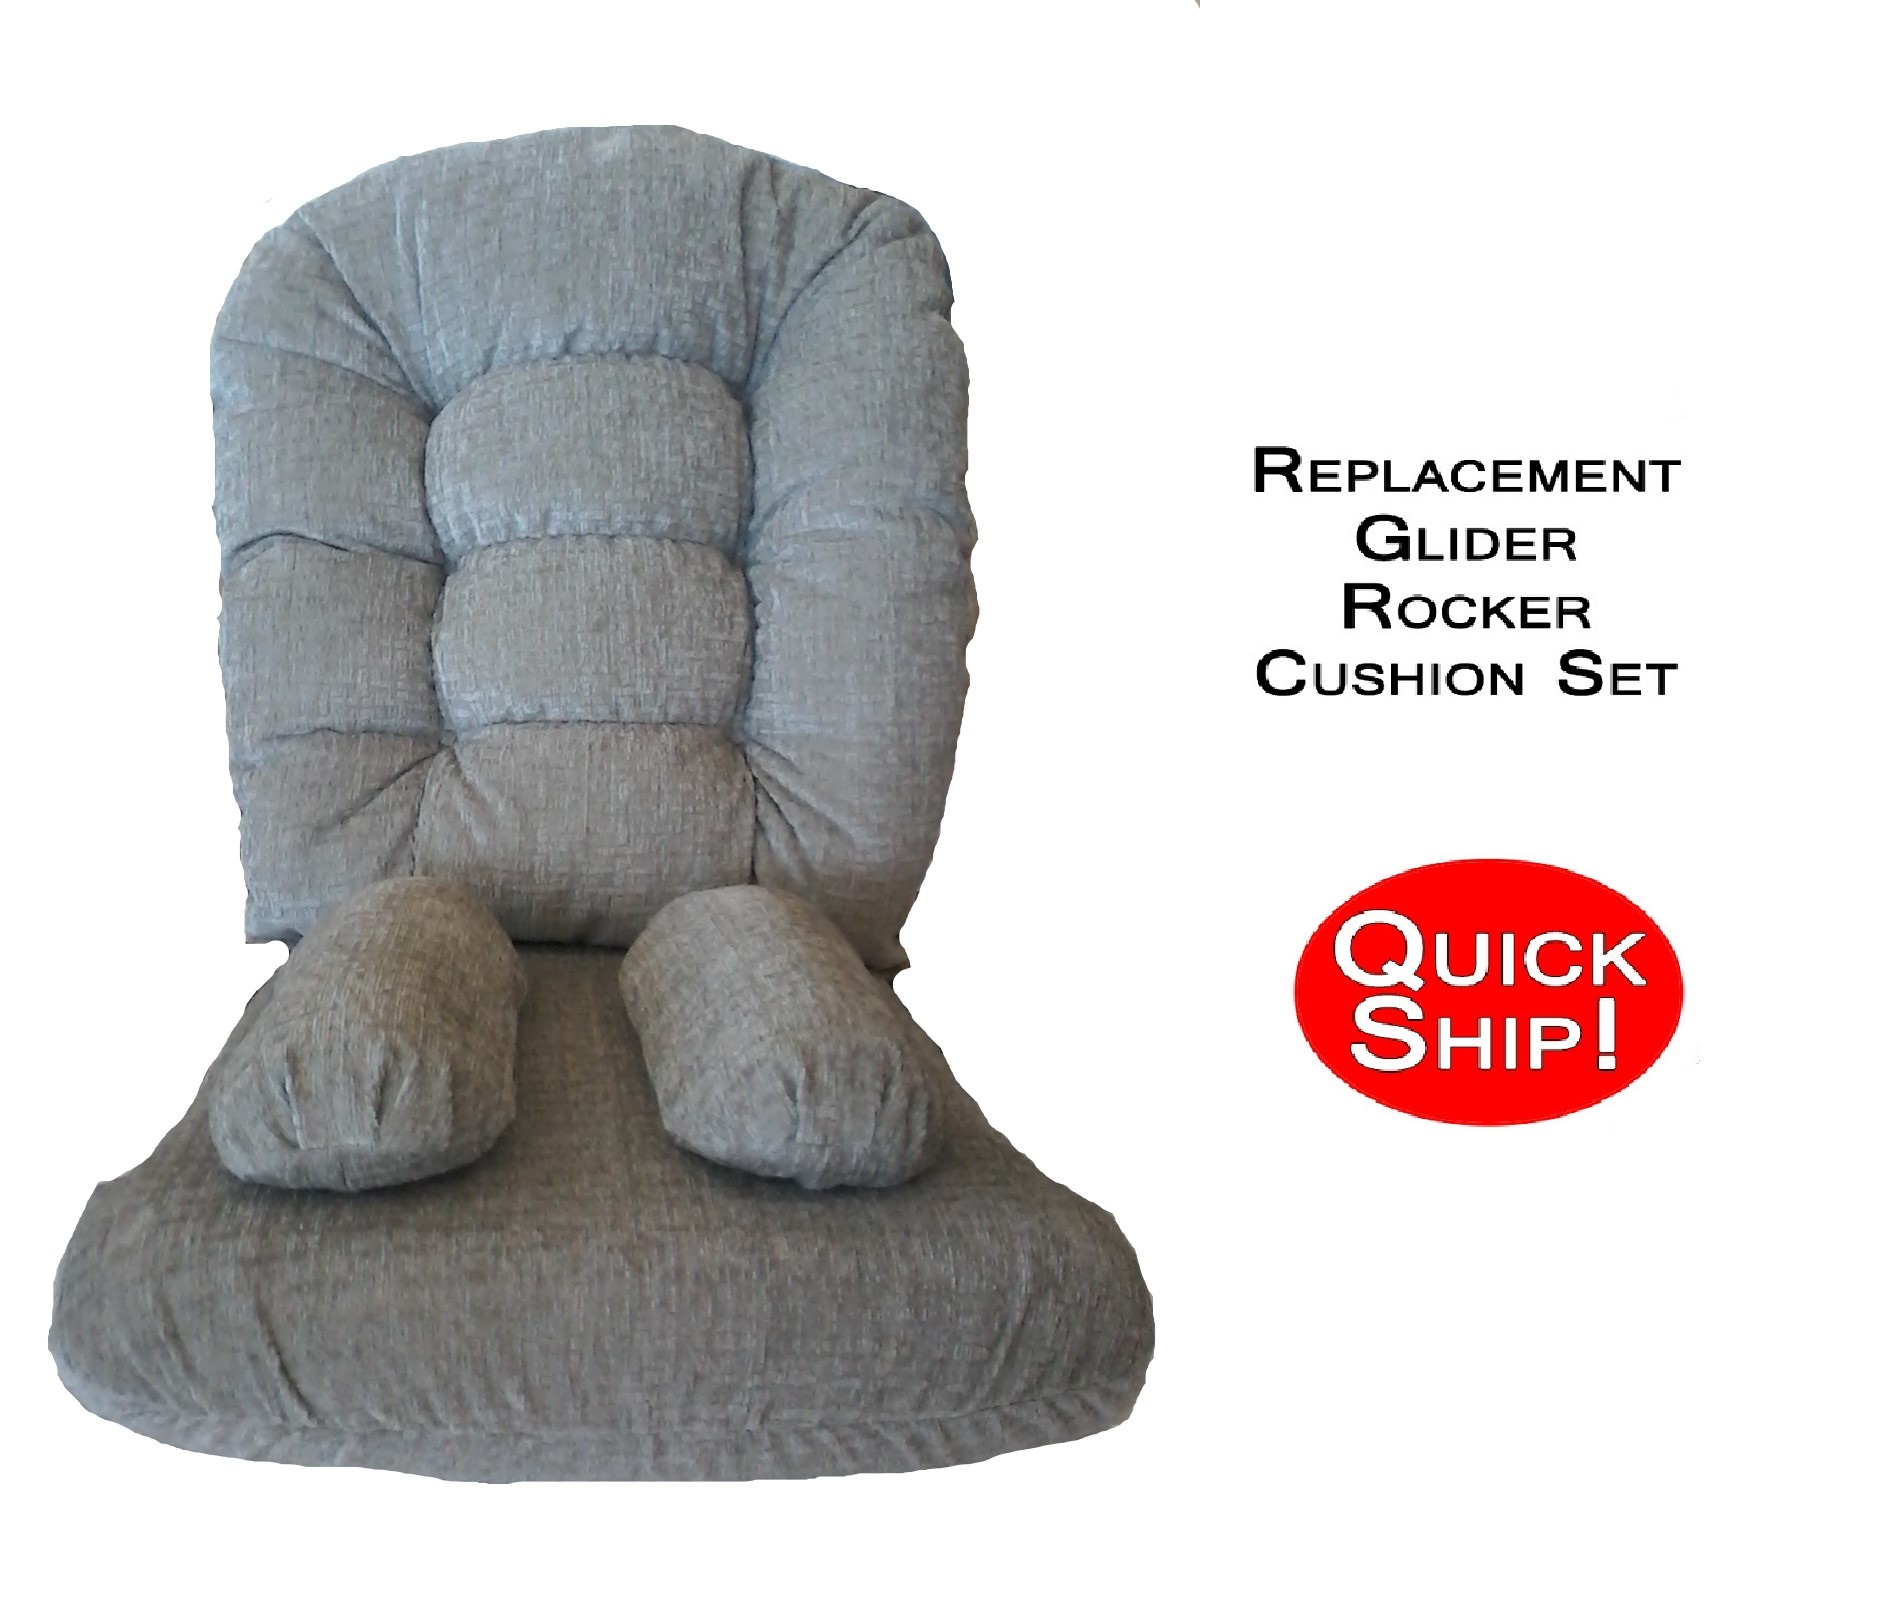 Quick Ship Glider Rocker Cushions For Bedazzle Chair Stone